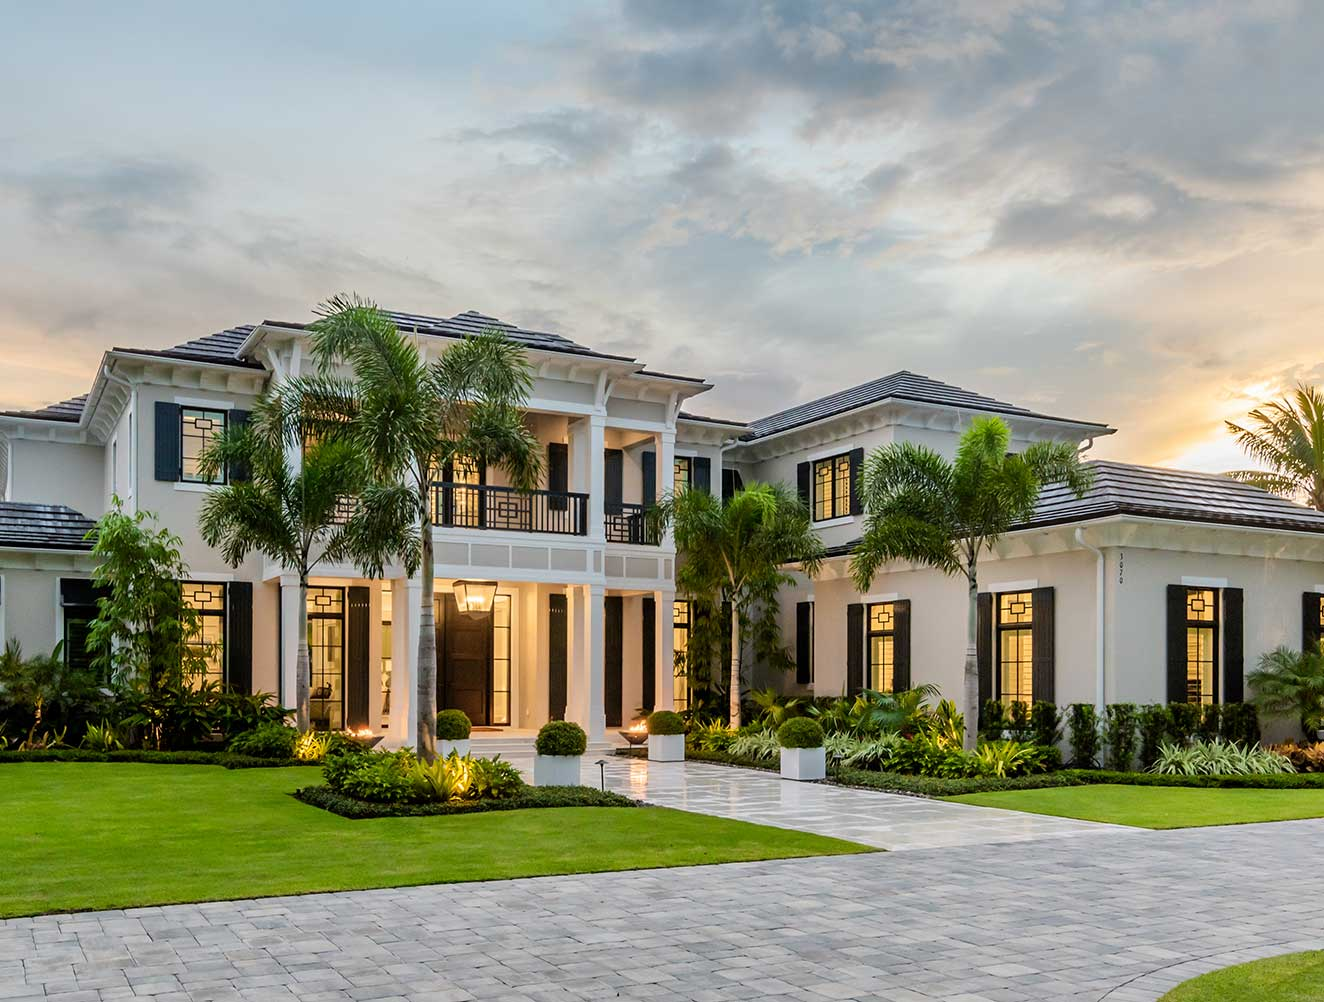 Exterior of Fort Charles Estate in Naples Florida, single family home designed by Kukk Architecture & Design Naples Architecture Firm